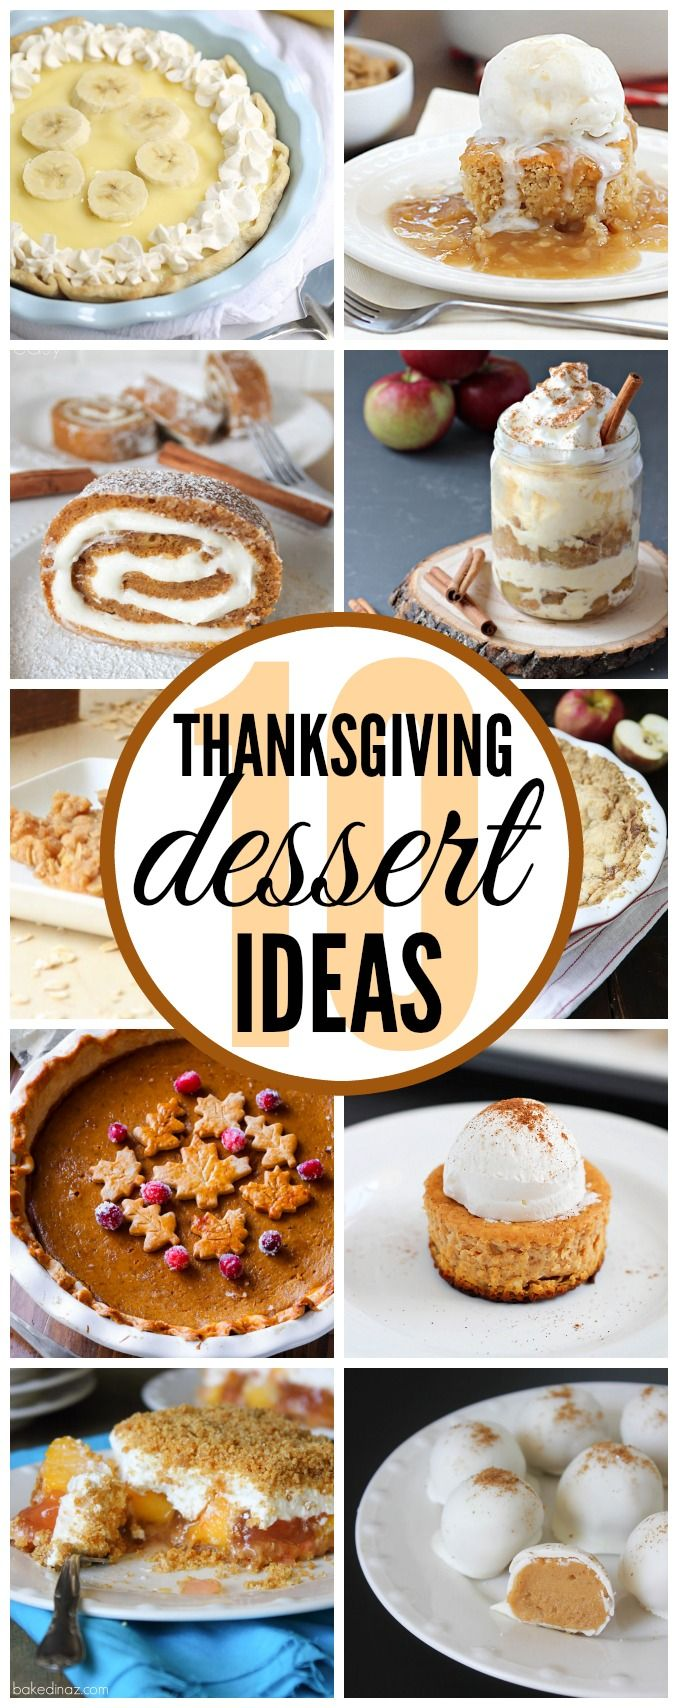 Thanksgiving Dessert Ideas - These all look easy and delicious! Click for recipes!